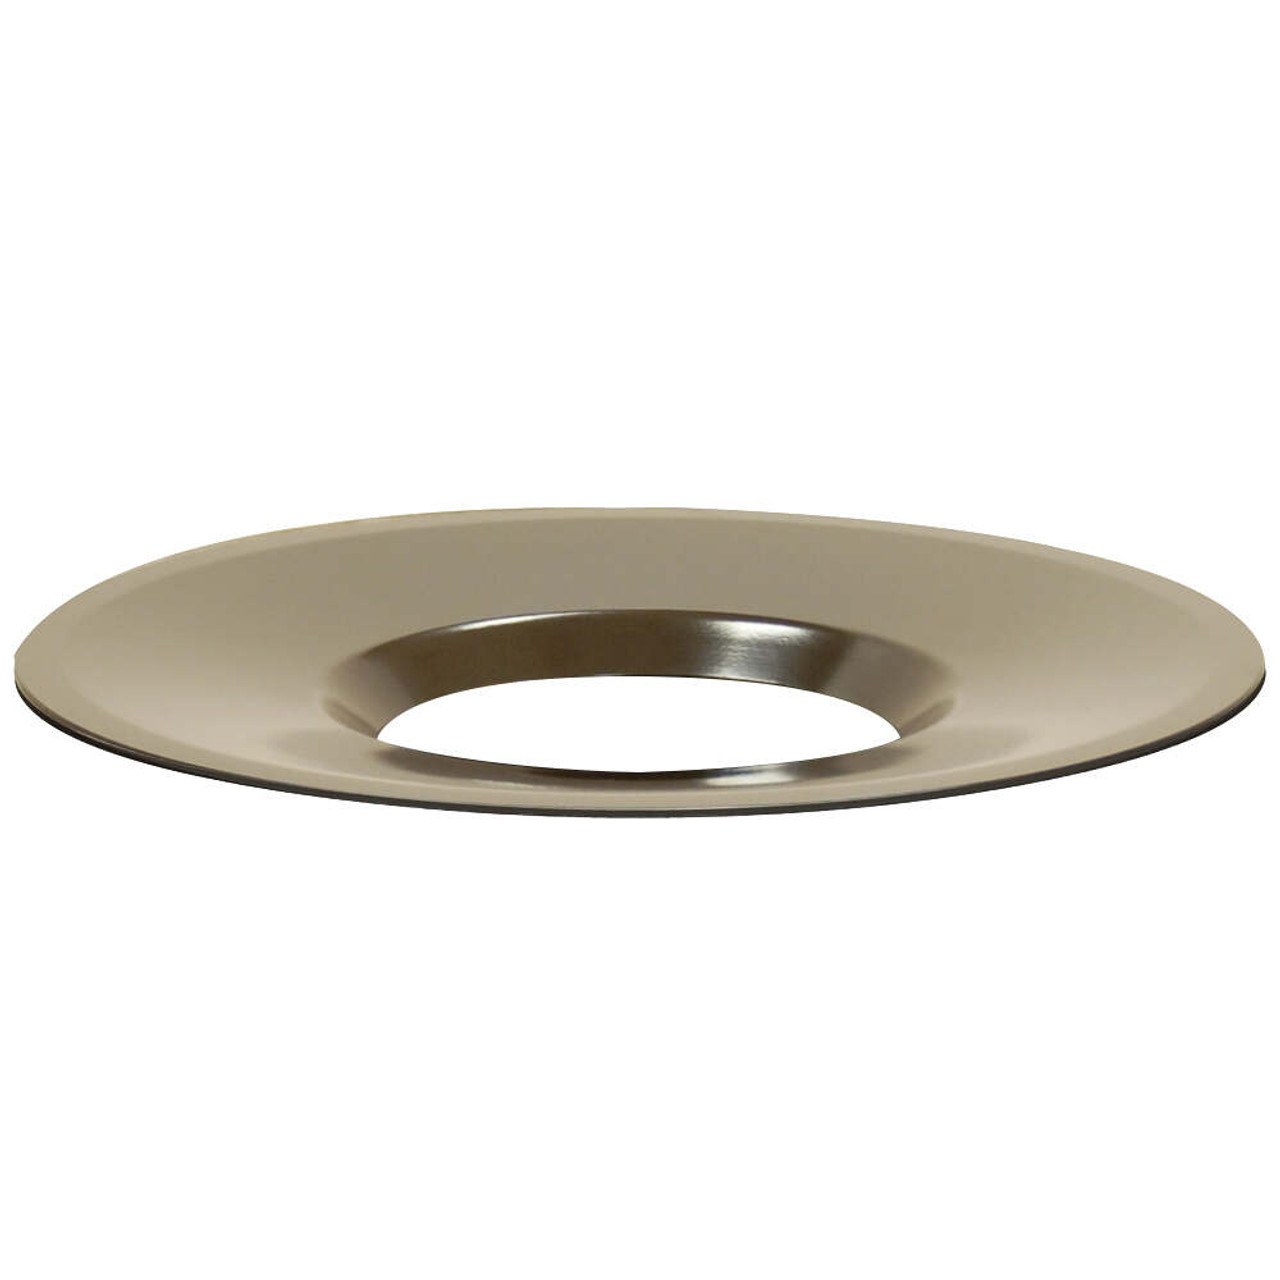 Round Aluminum Funnel Top Trash Can Lid for Concrete Garbage Cans